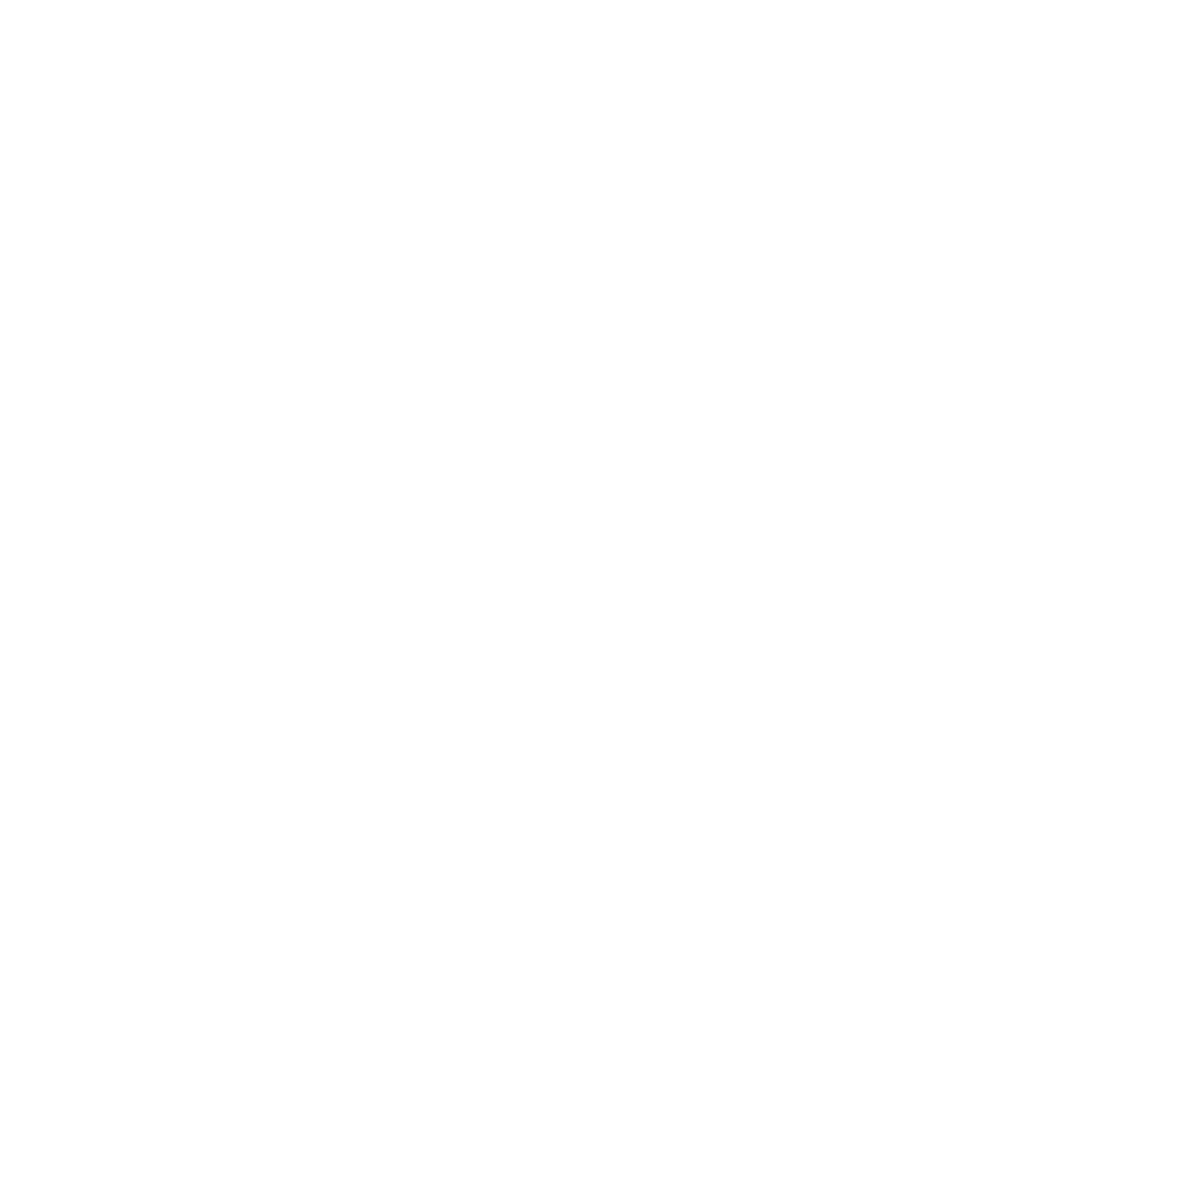 Fentress Global Challenge